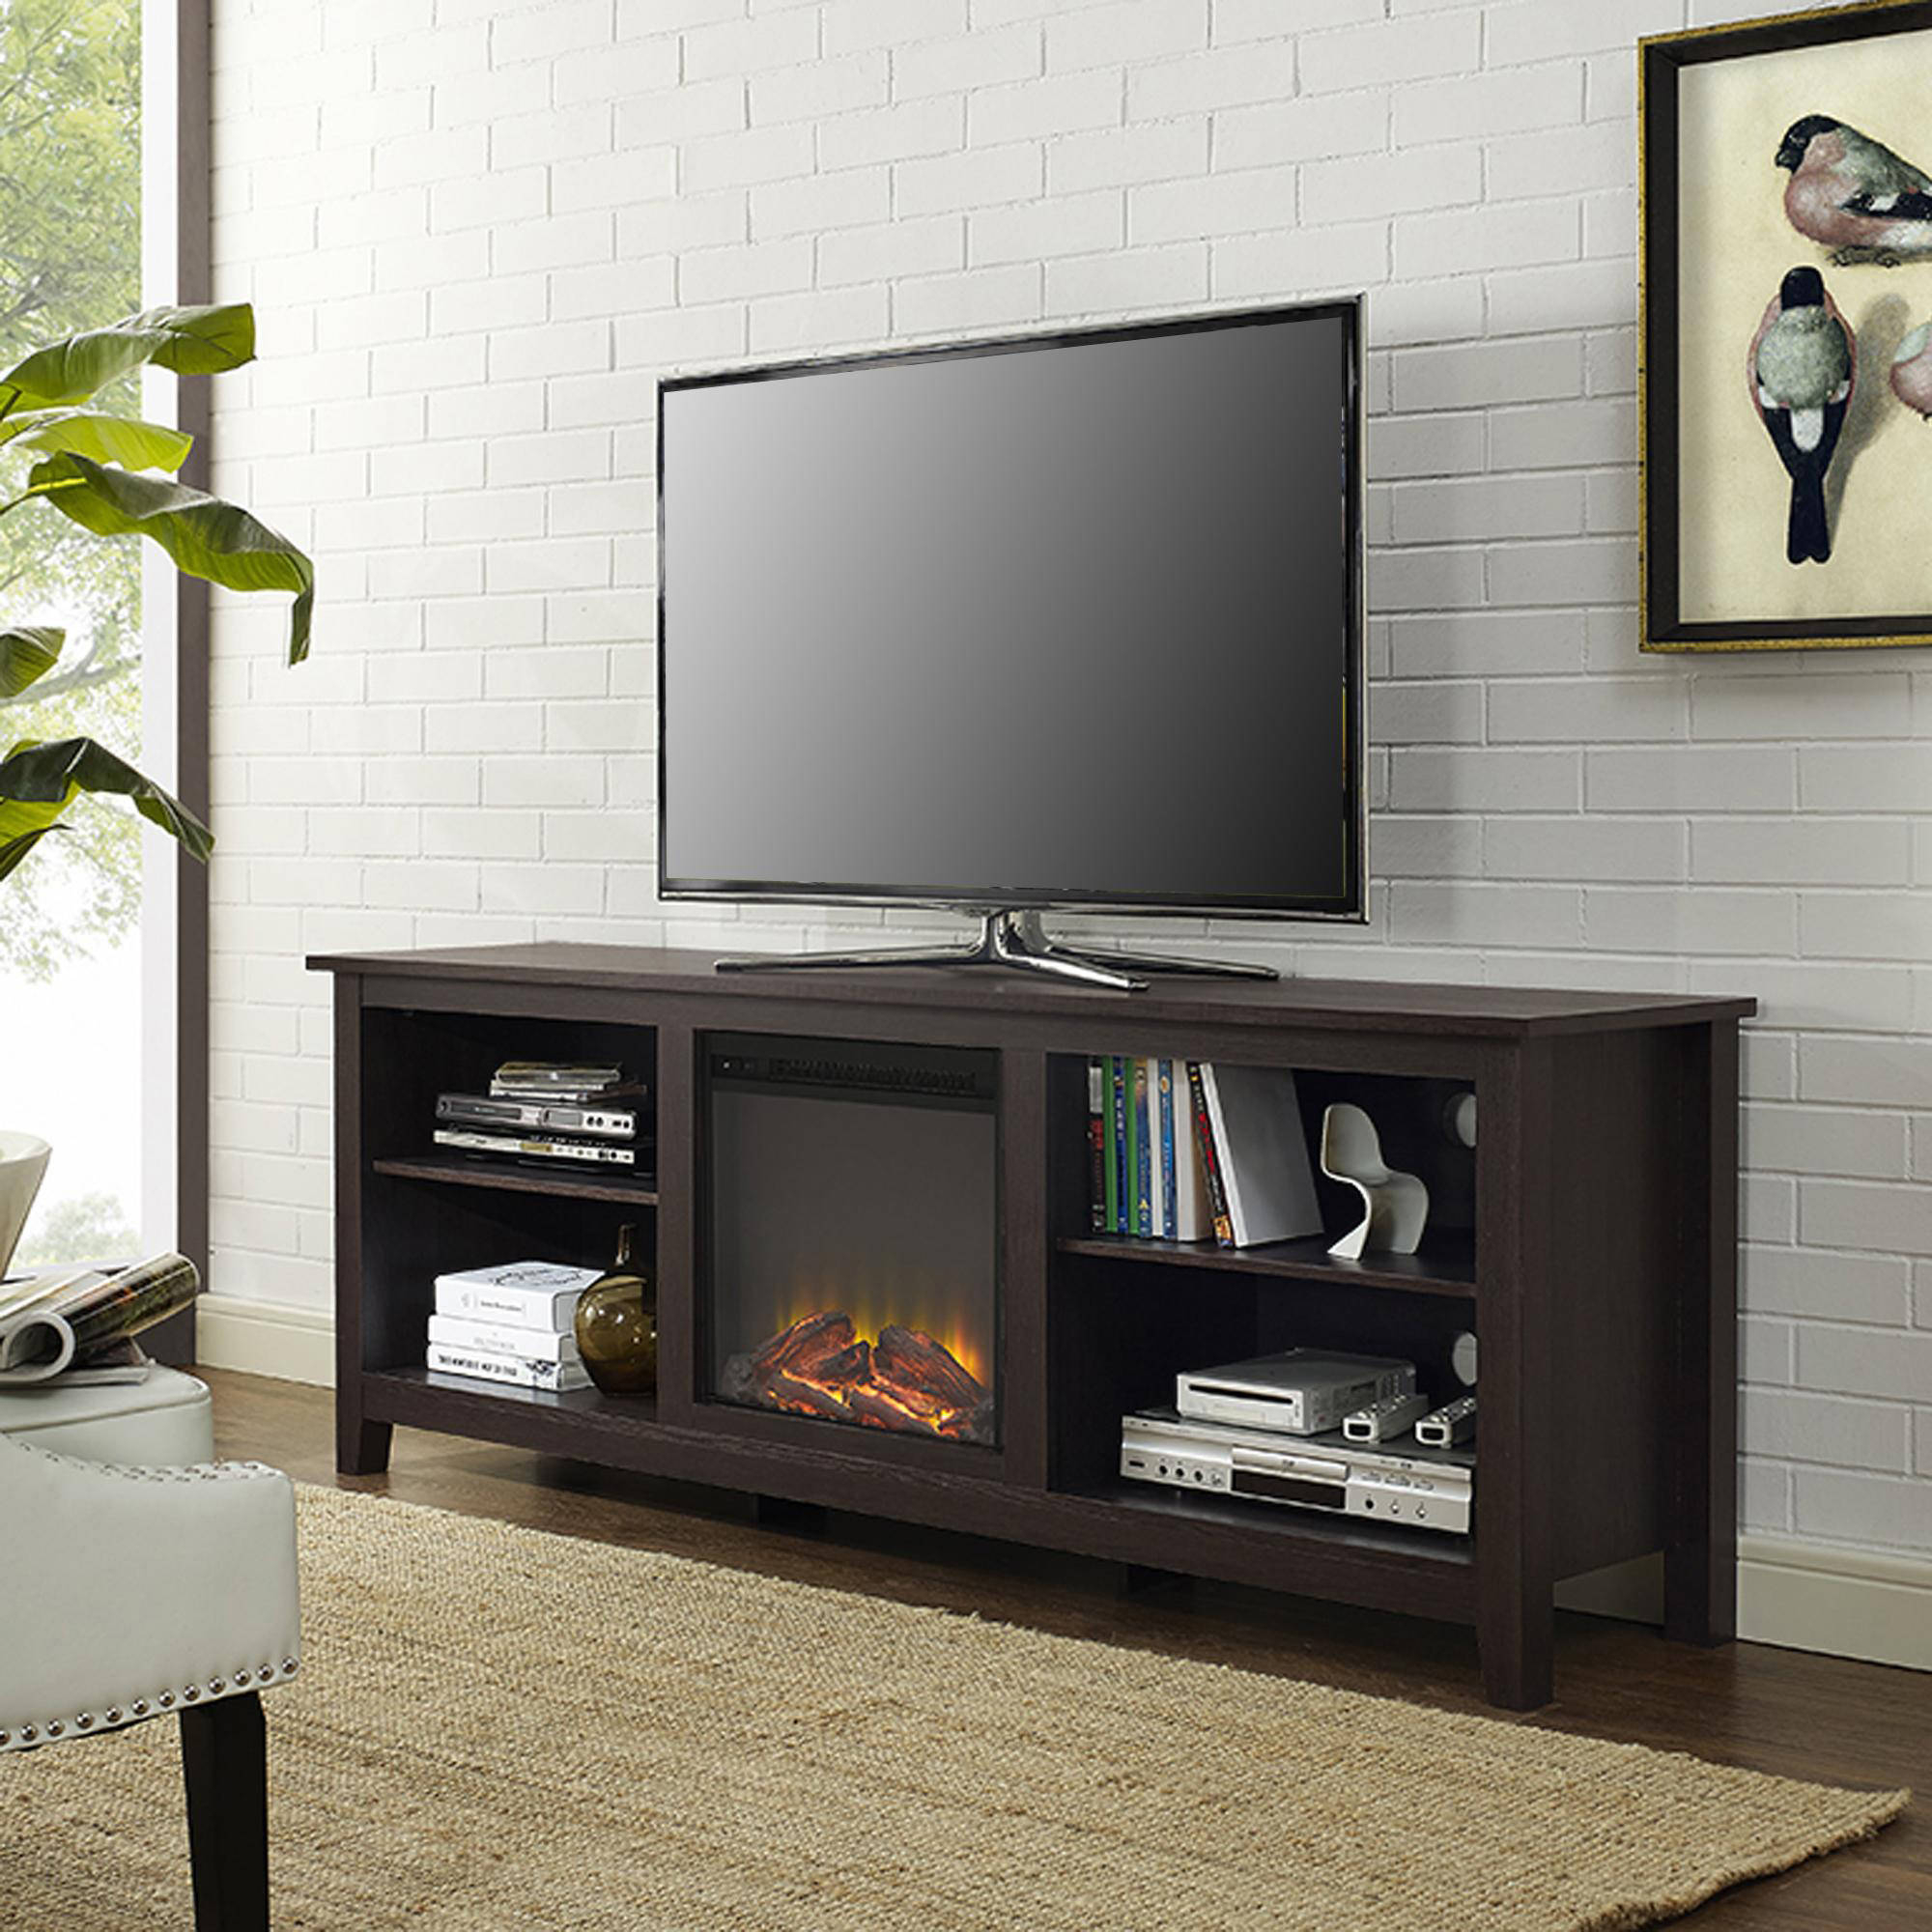 Tv Stands & Entertainment Centers - Walmart pertaining to Century White 60 Inch Tv Stands (Image 24 of 30)